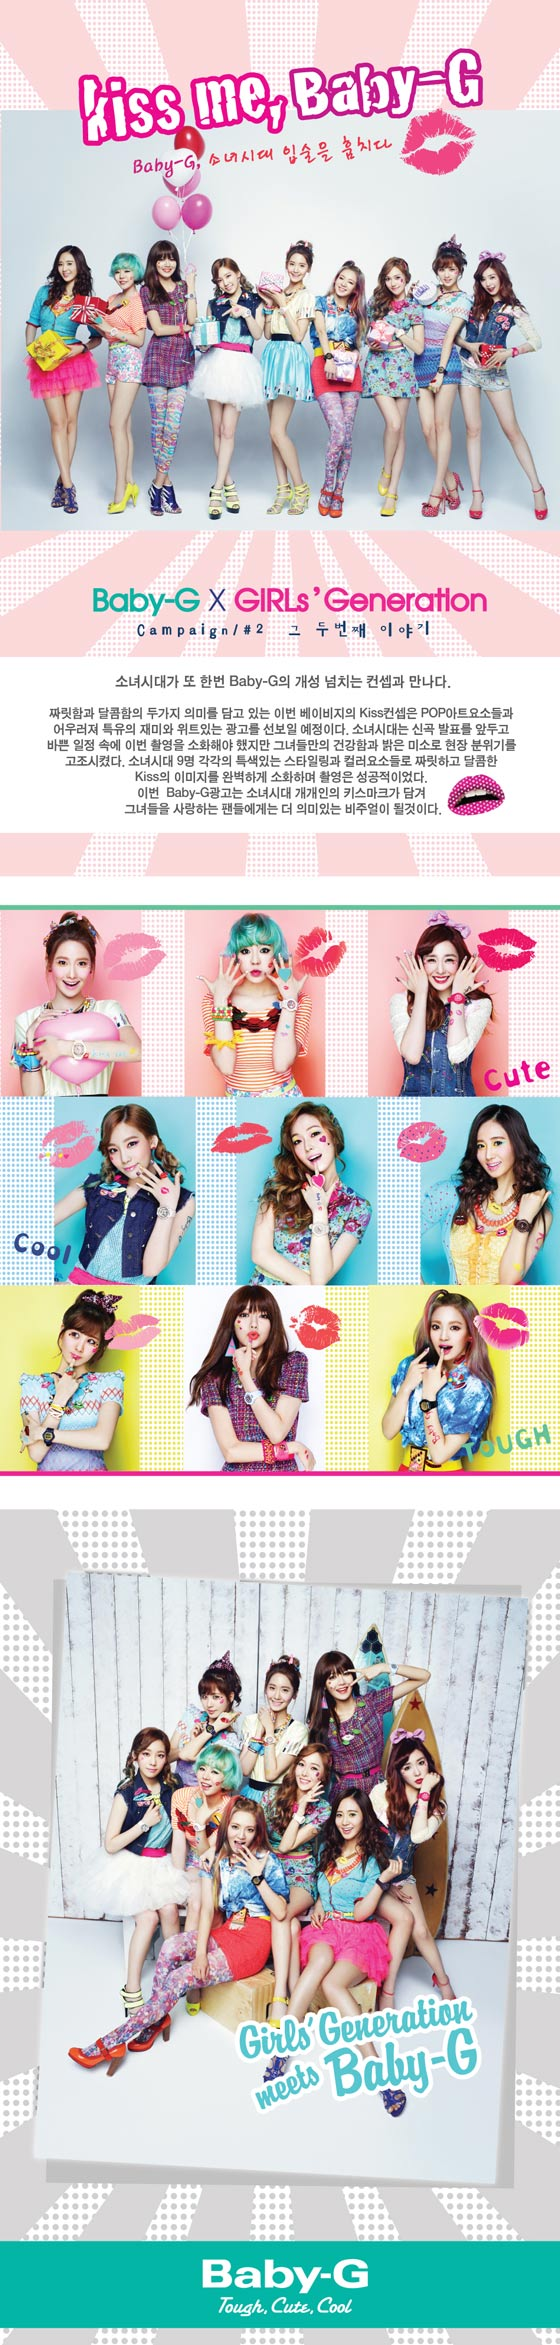 Snsd Kiss Me Baby G campaign